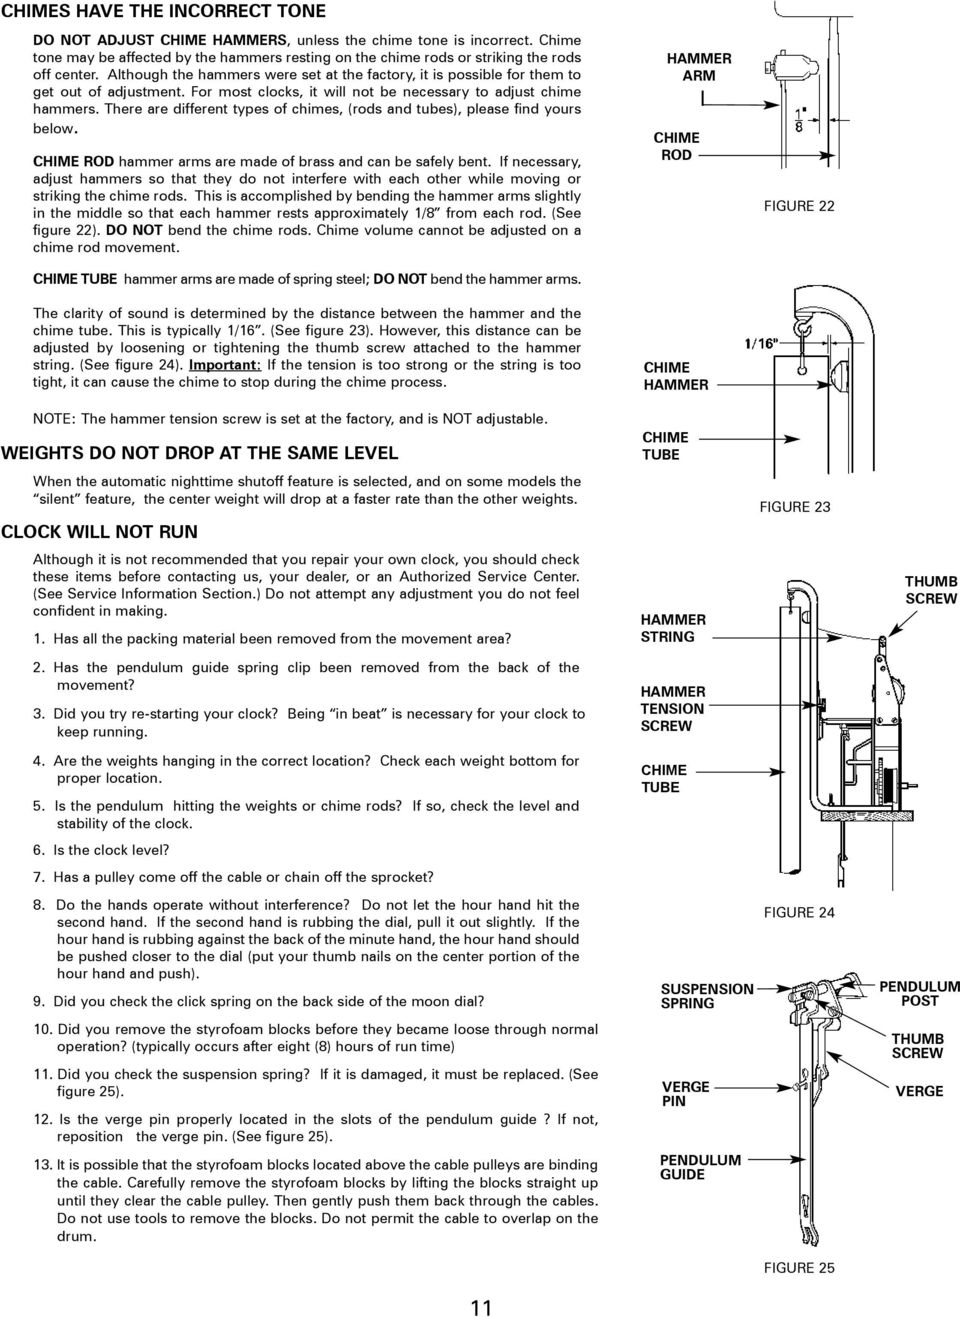 Grandfather Clock Pendulum Guide Pictures to Pin on Pinterest - PinsDaddy